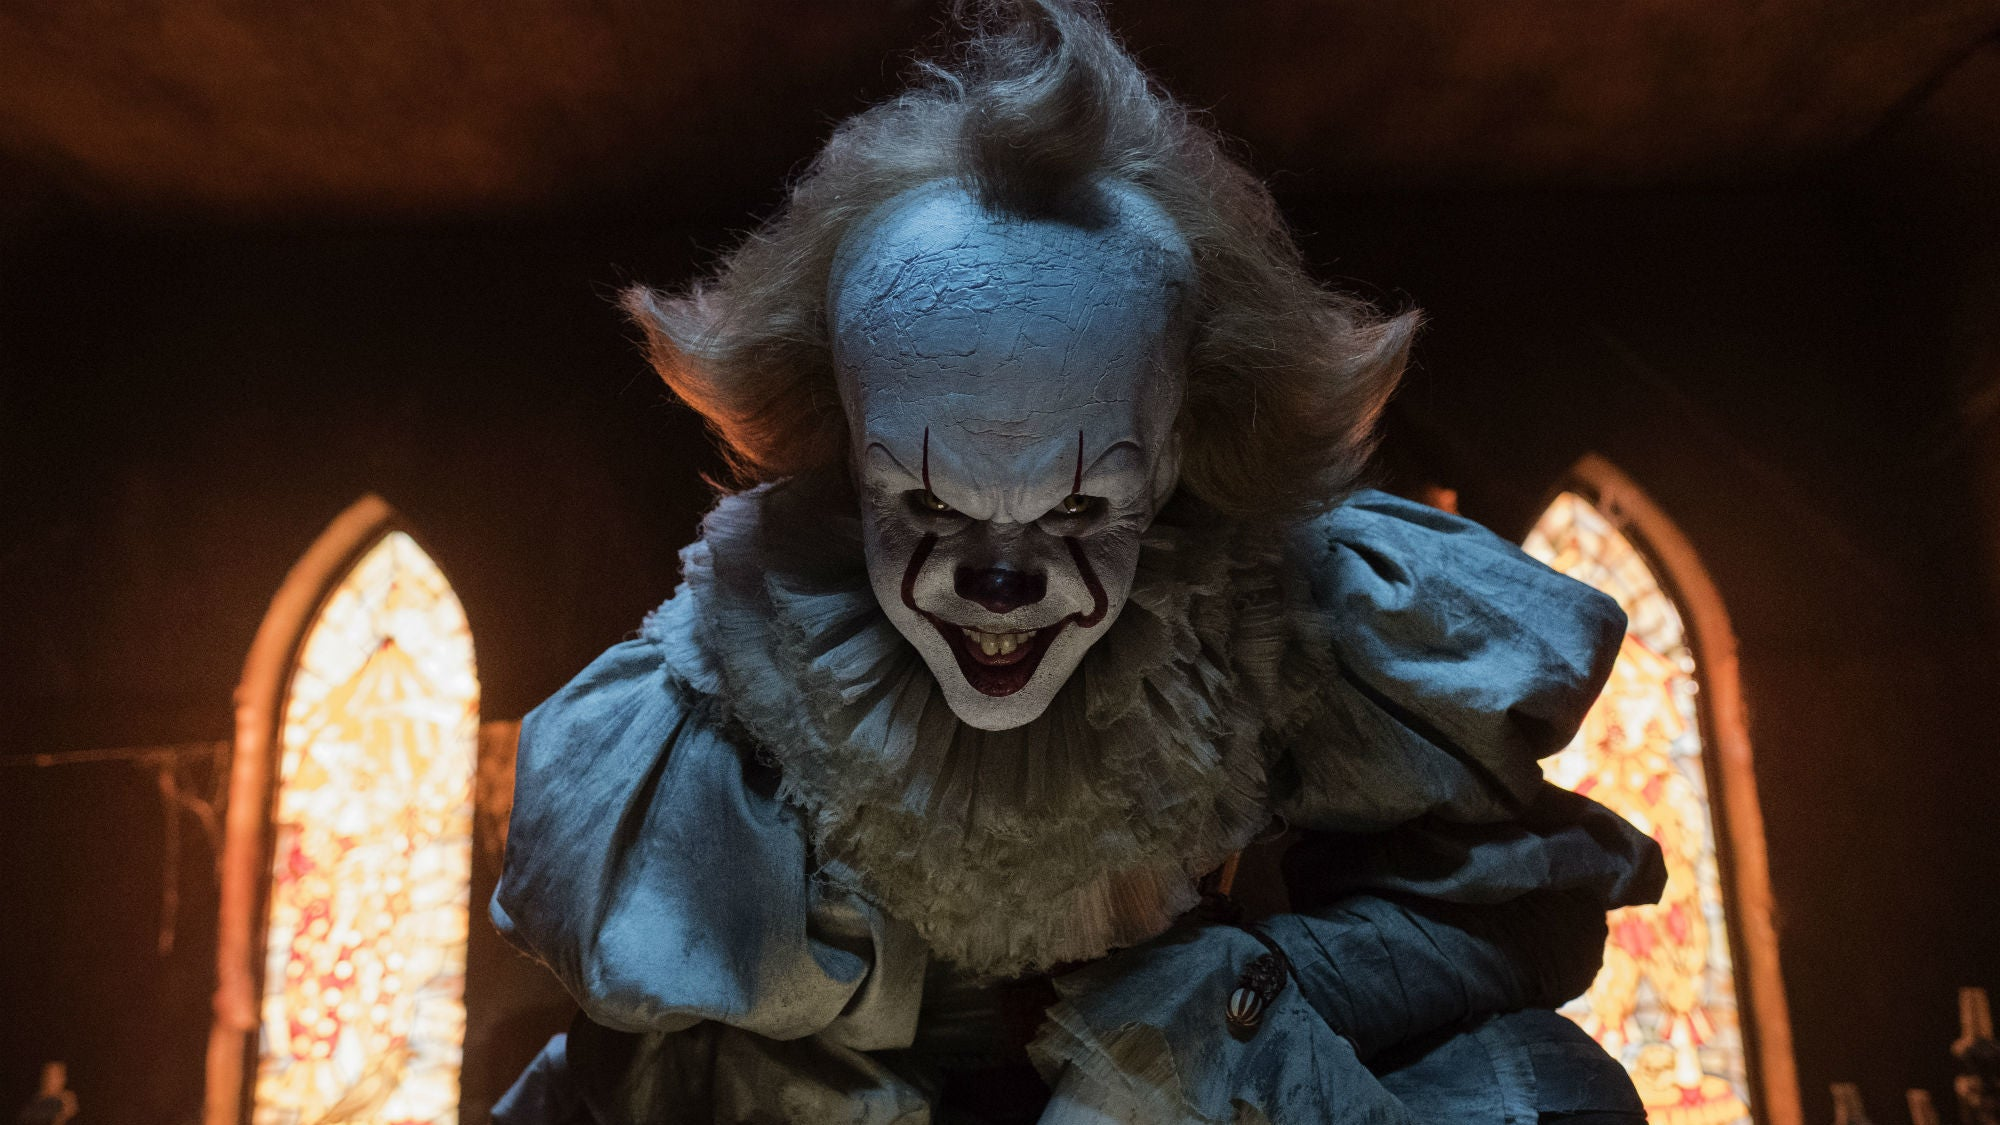 Pennywise Doesn't Eat A Baby In It's Deleted Scenes, But There Is An Alternate Ending